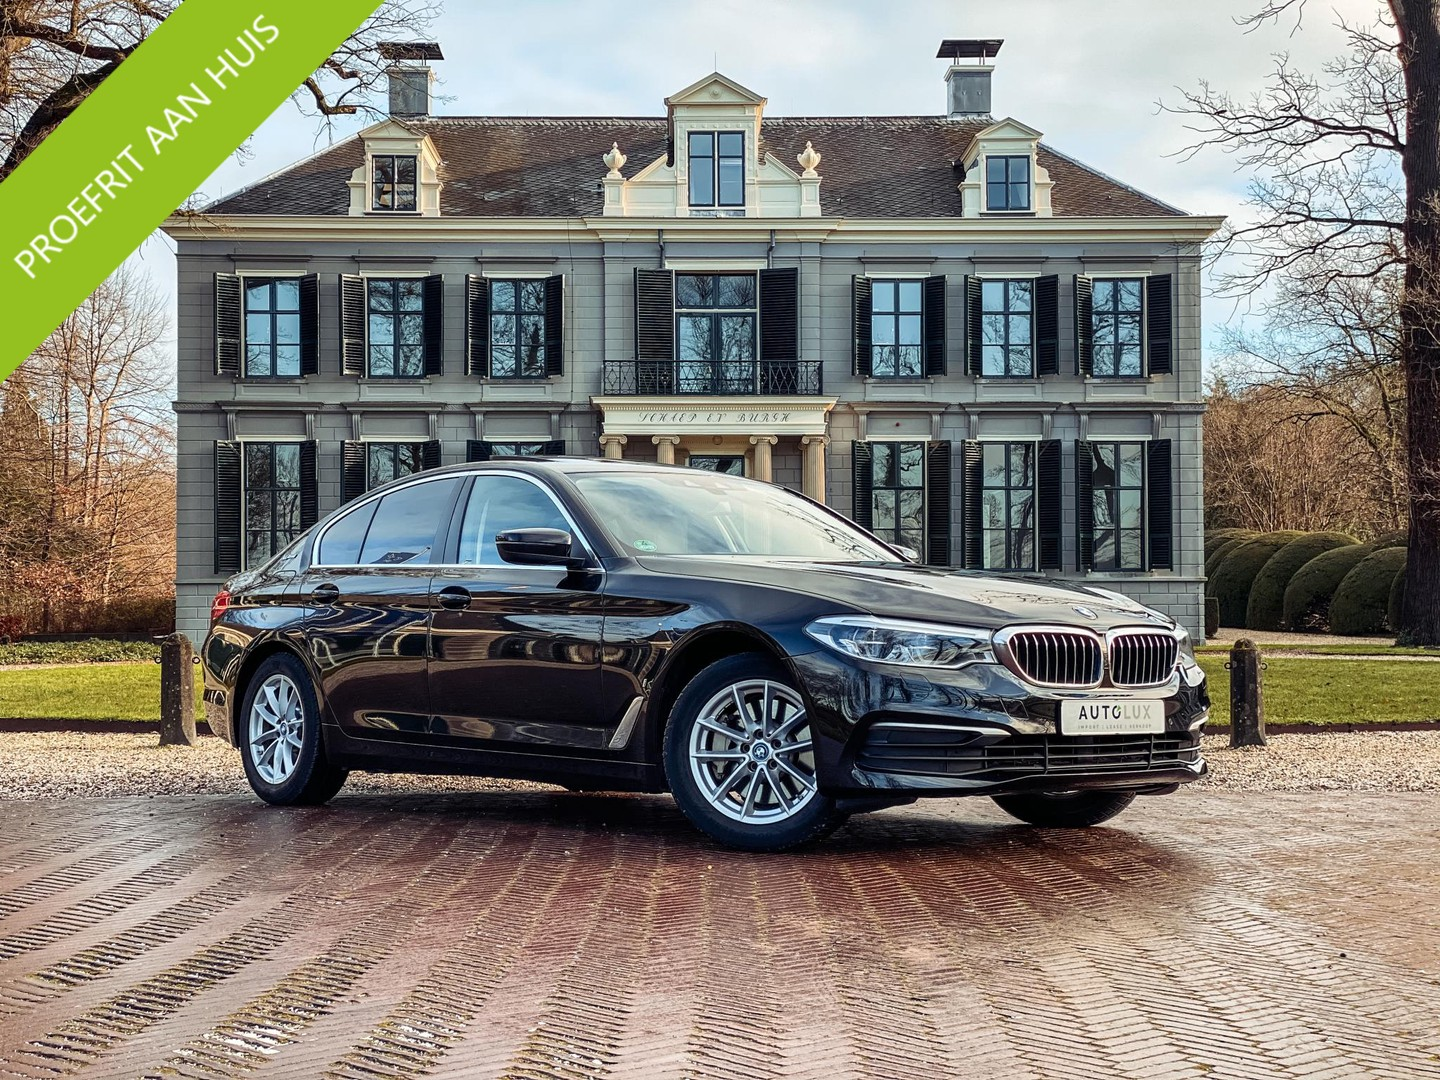 Bmw 5 serie 530e iperformance high executive btw-auto/ automaat/ hybride/ leer/ panoramadak